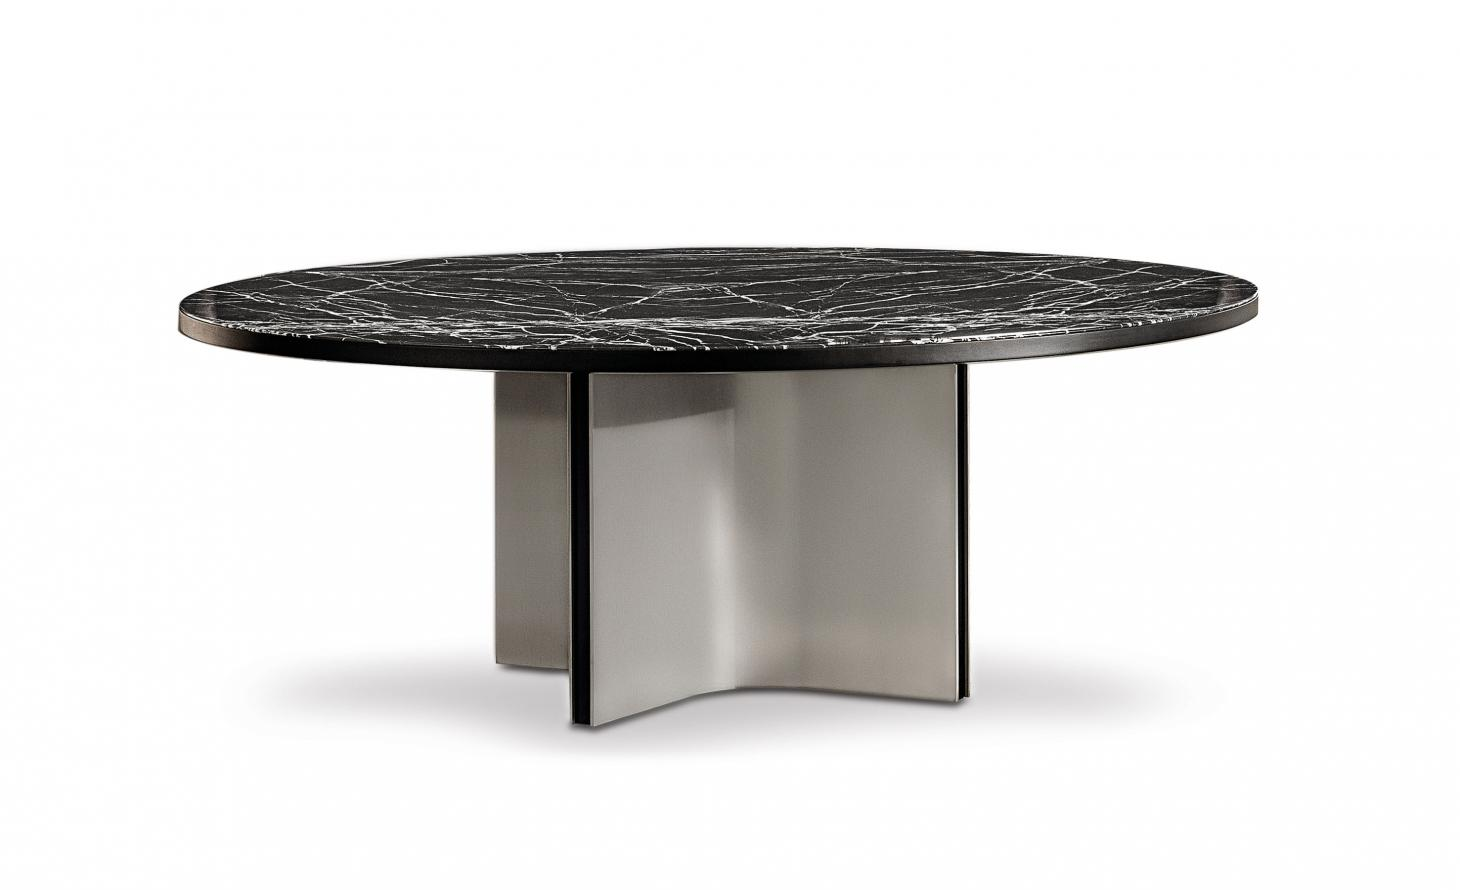 Marvin table by Rodolfo Dordoni for Minotti with marble top and metal base